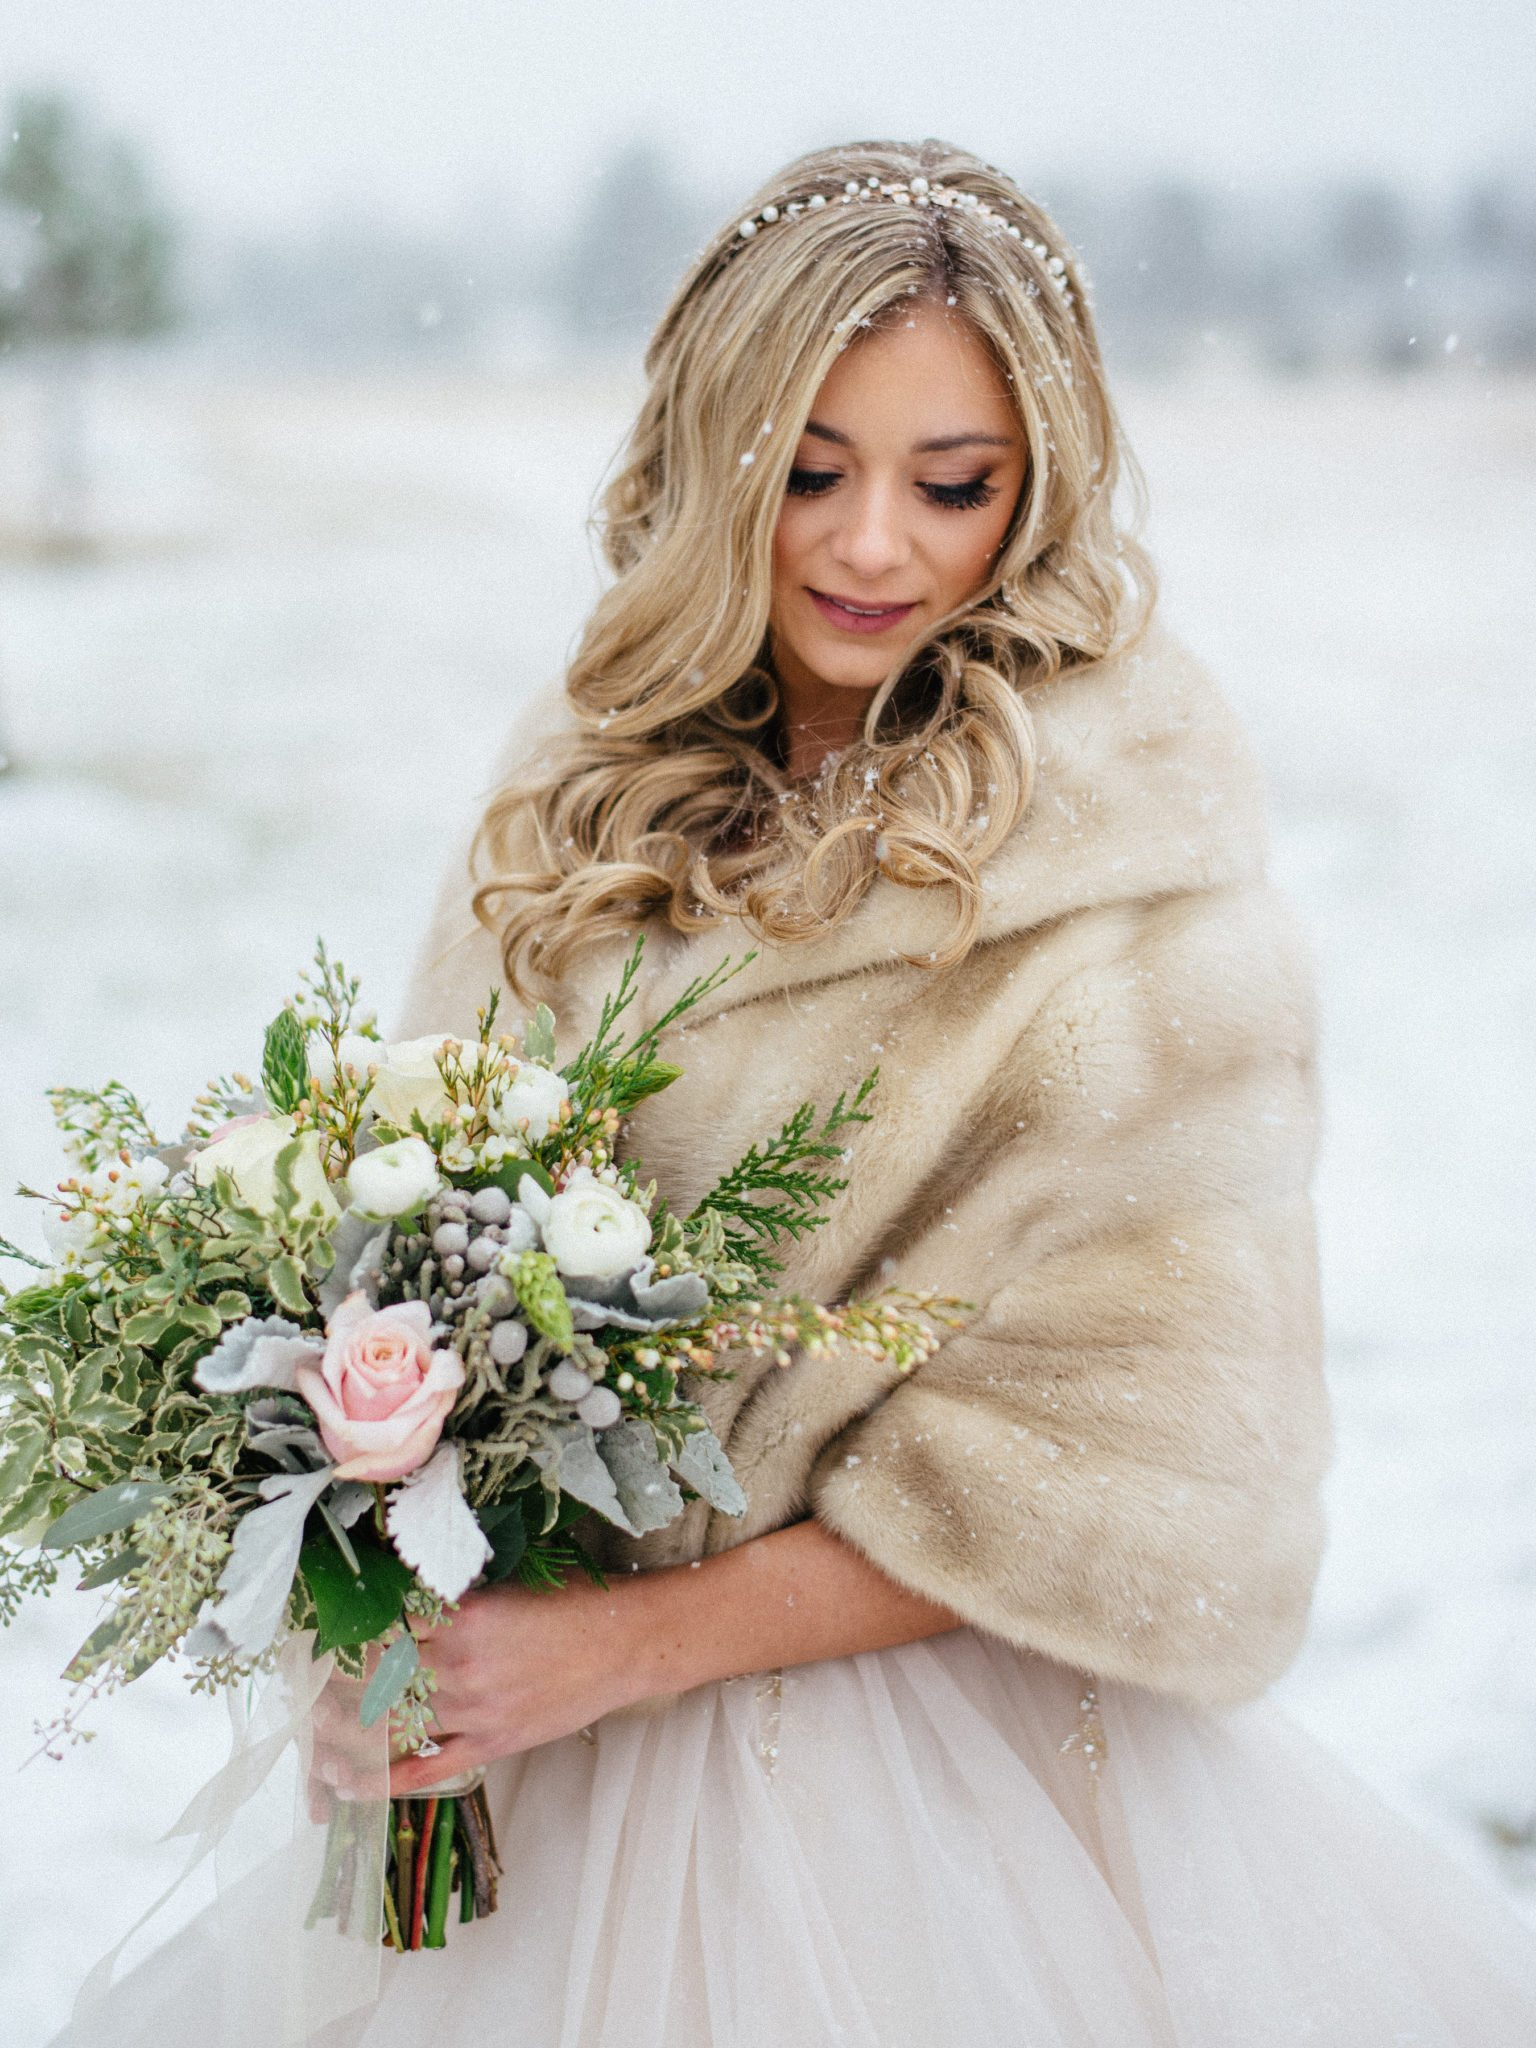 KimStockwellAshleyandMattMoraisVIneyardWedding217 Winter Weddings - A Snow Fairy Tale